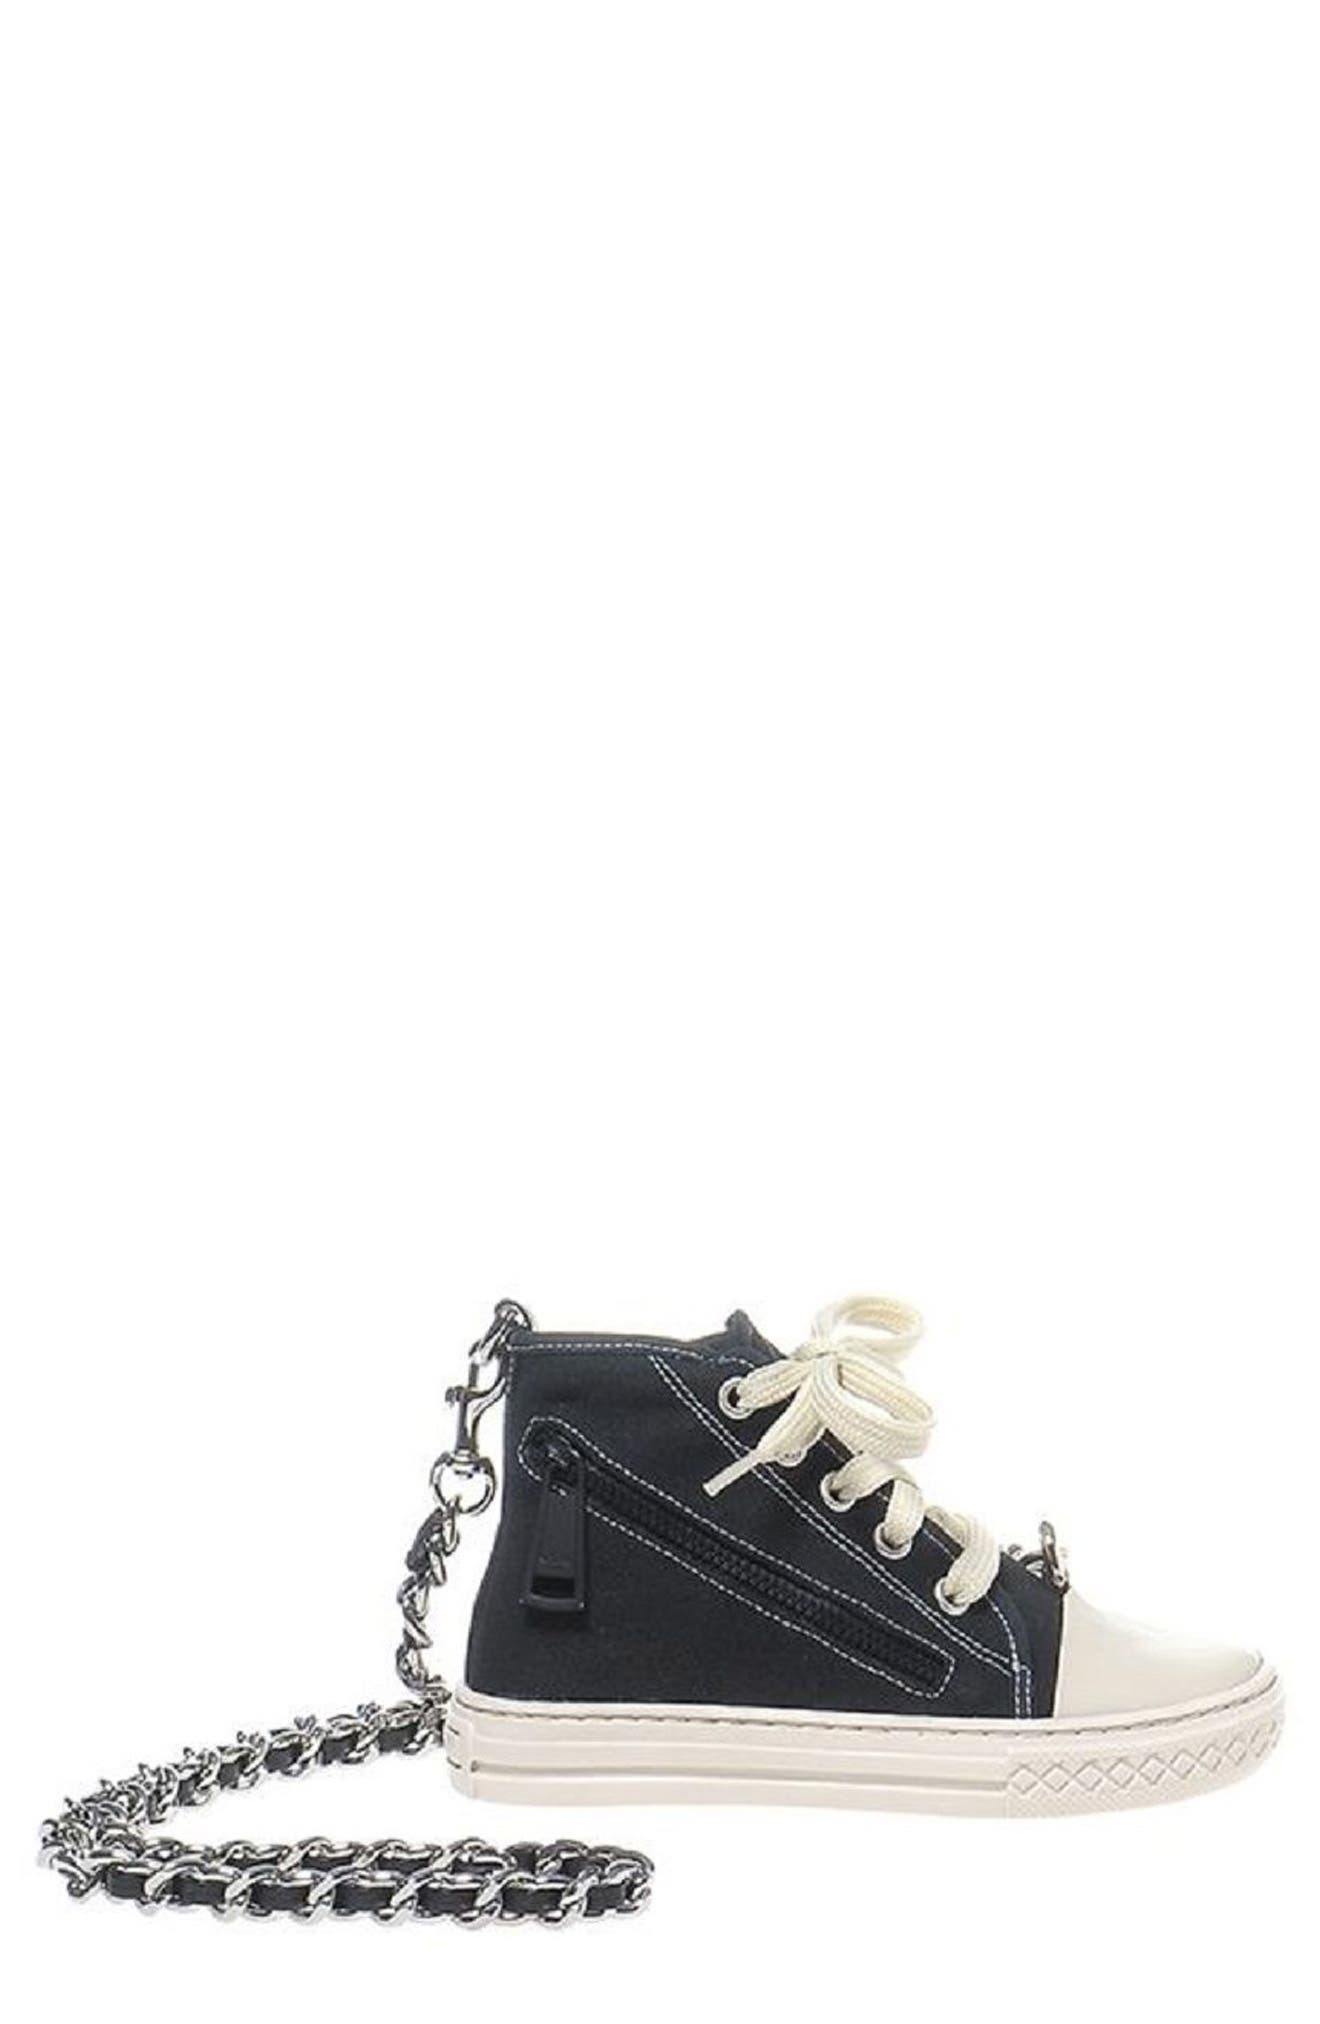 Alternate Image 1 Selected - Moschino Sneaker Shoulder Bag